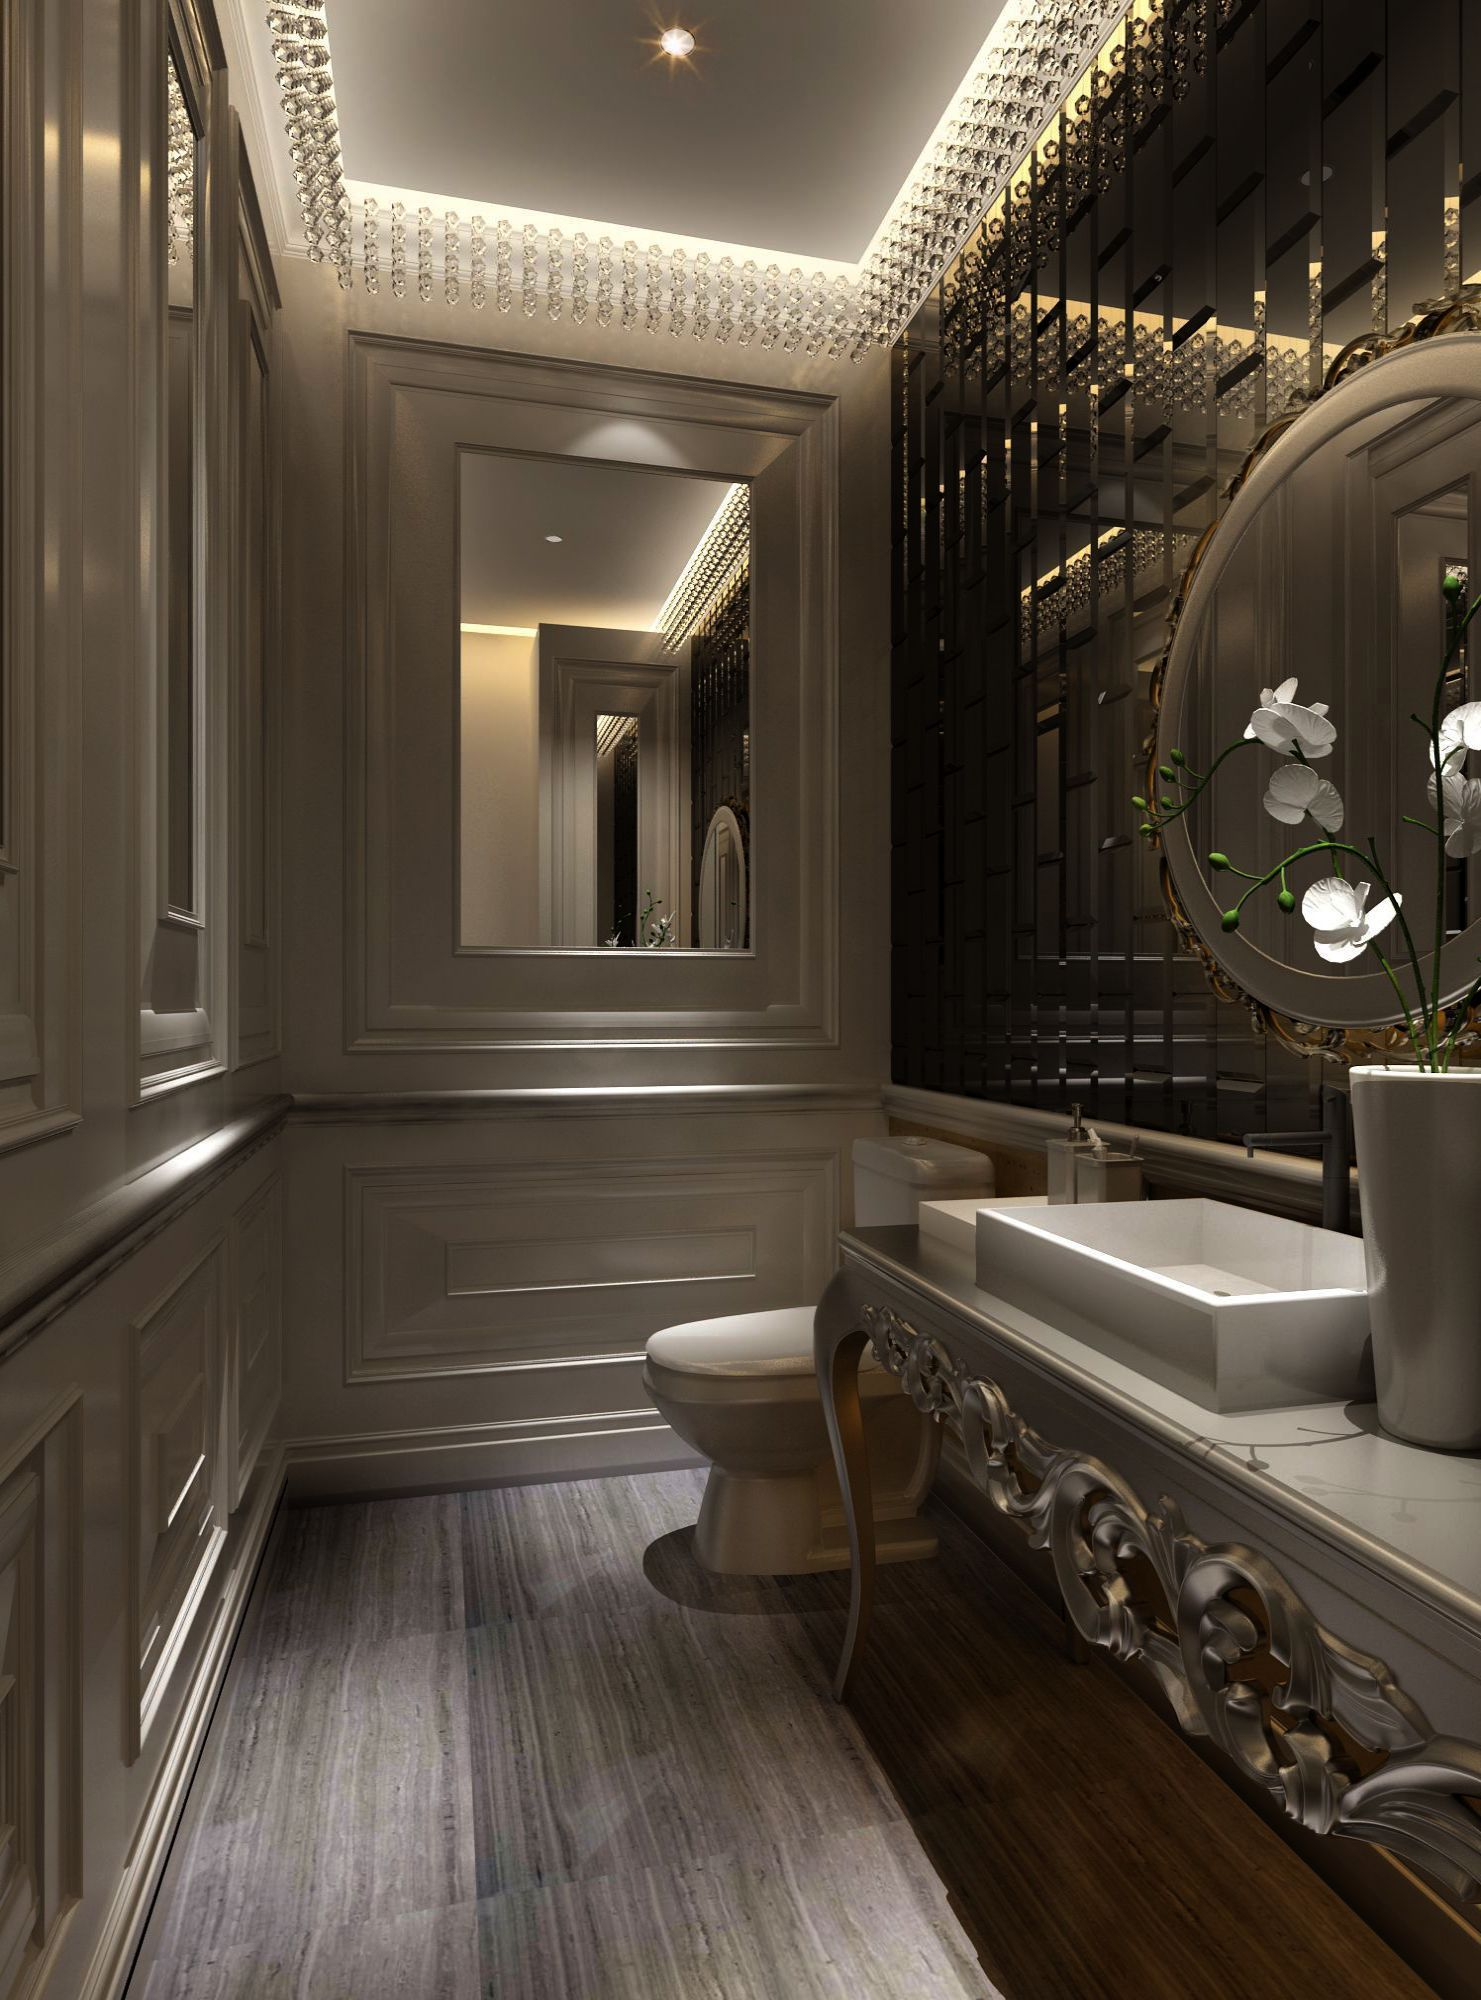 Bathroom Remodel Design Tool Free & Bathroom Ideas Kenya